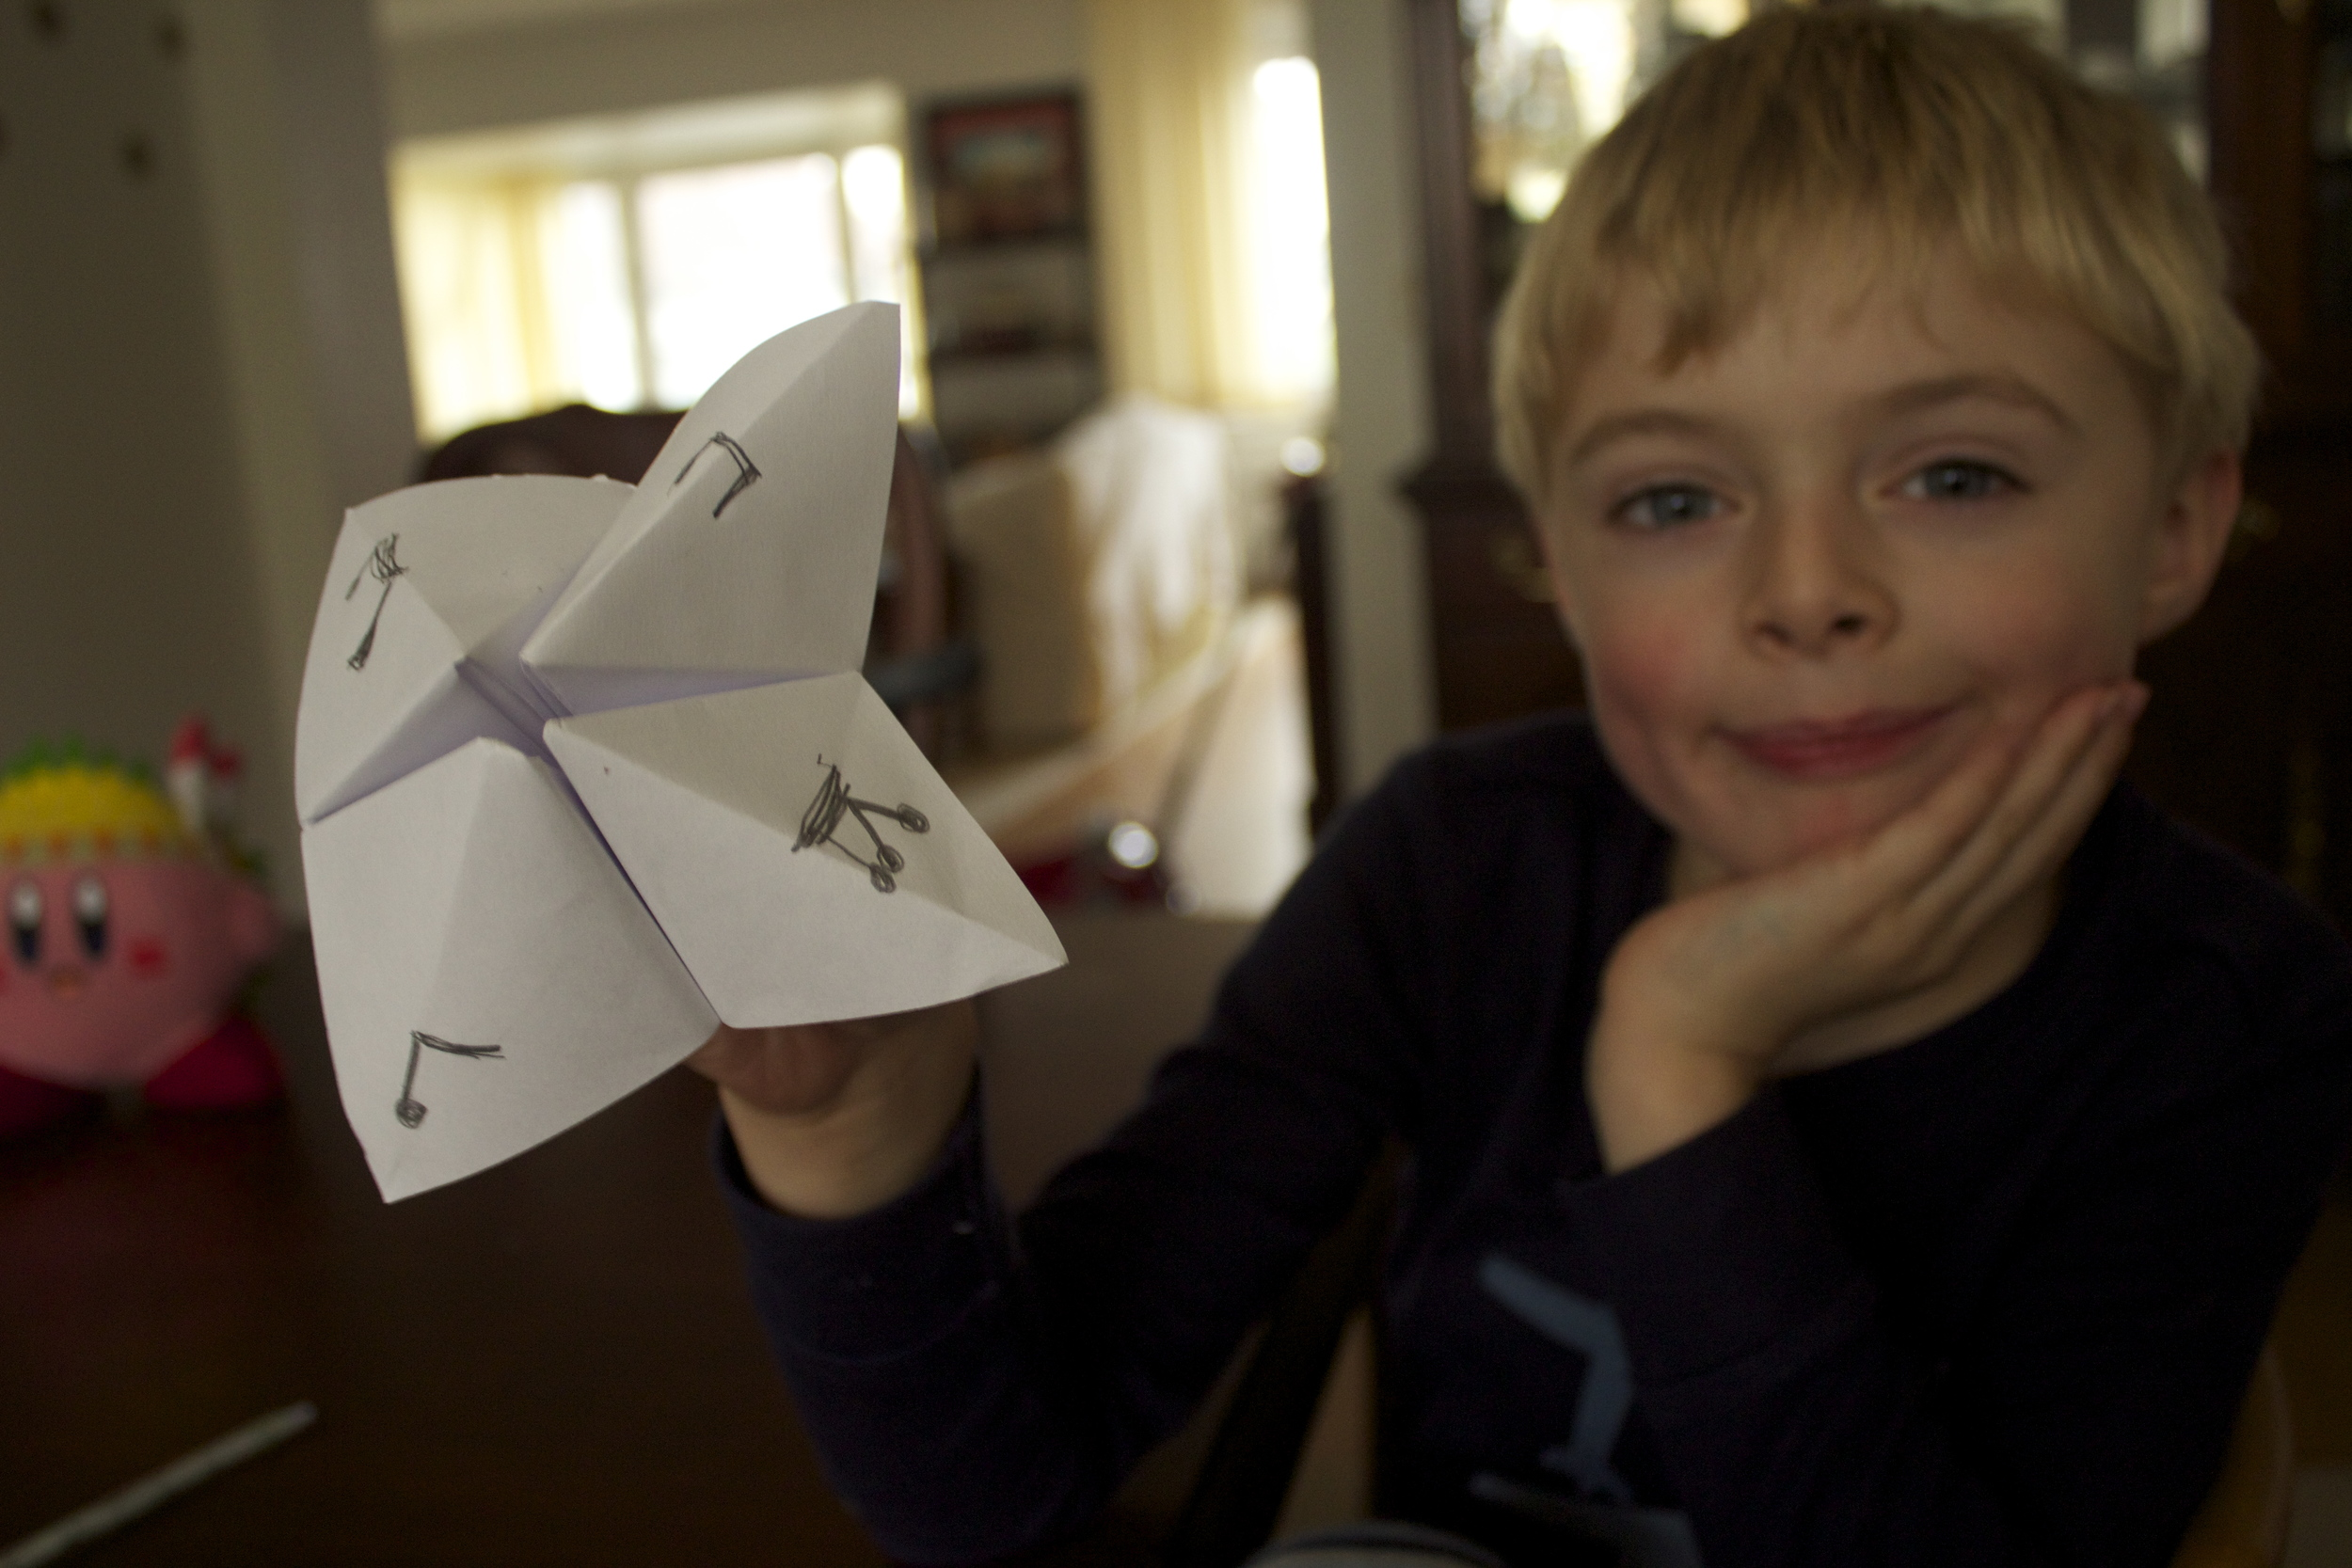 You should now have one of these. Some of you may remember it as the fortune telling paper game of middle school times.